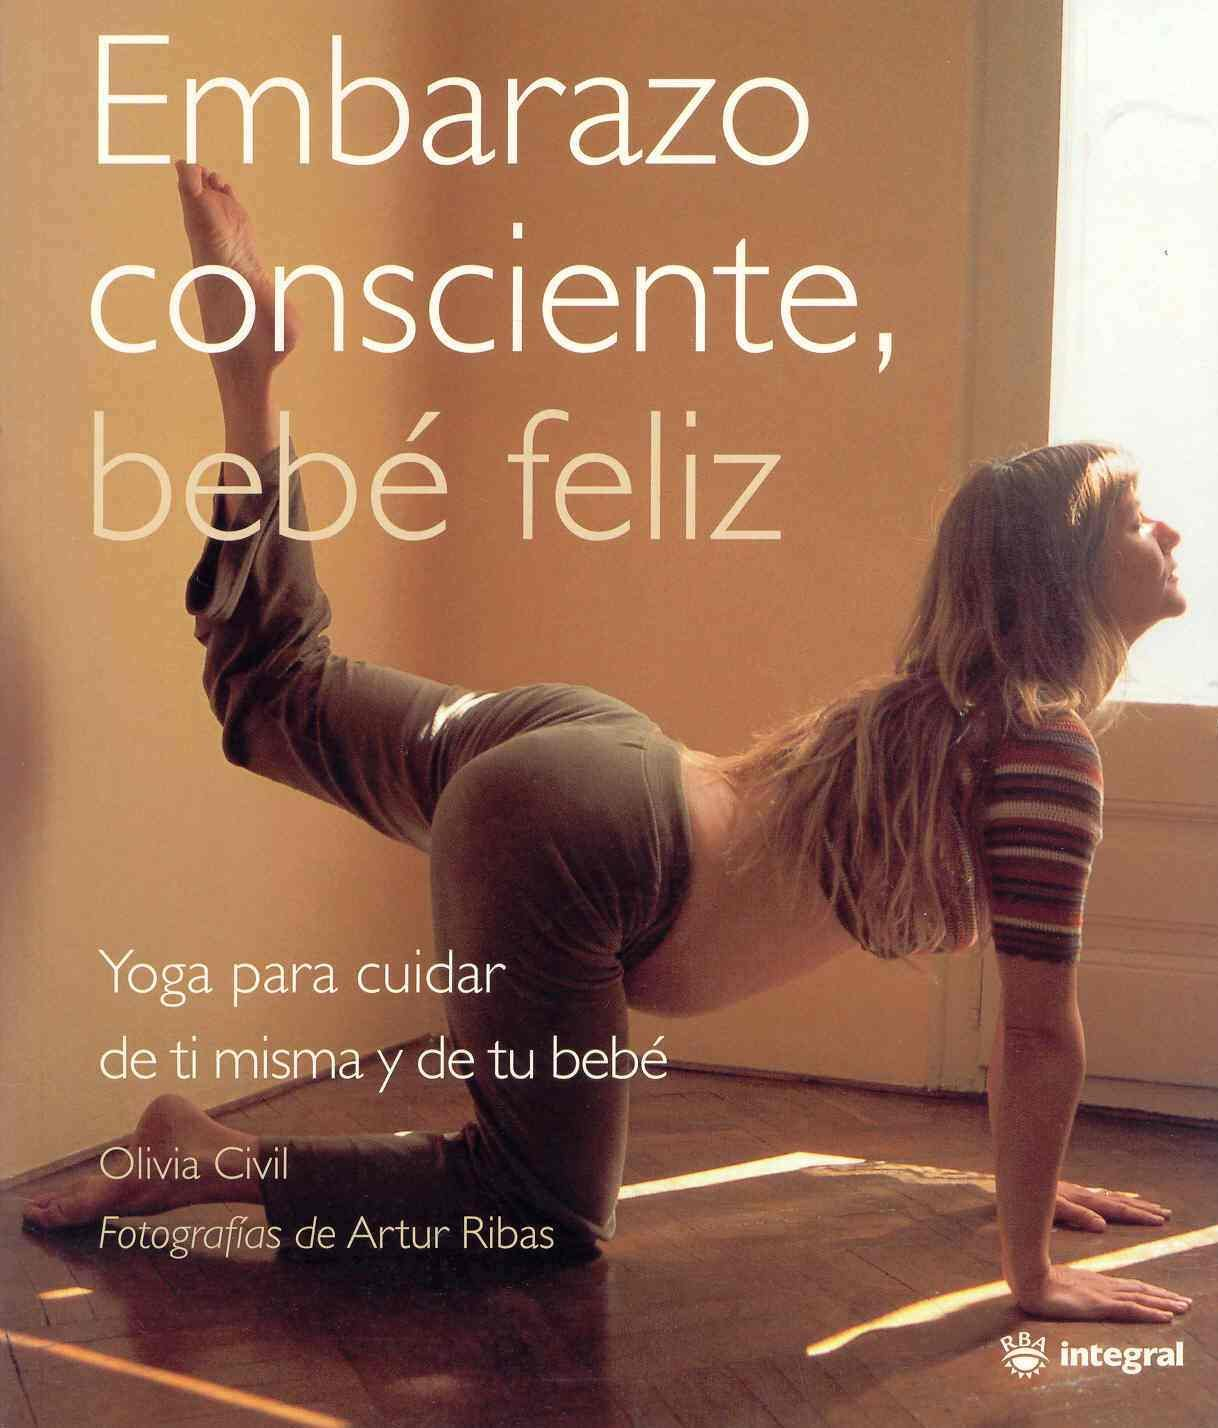 Embarazo Consciente Bebe Feliz: 9788478715572: Amazon.com: Books